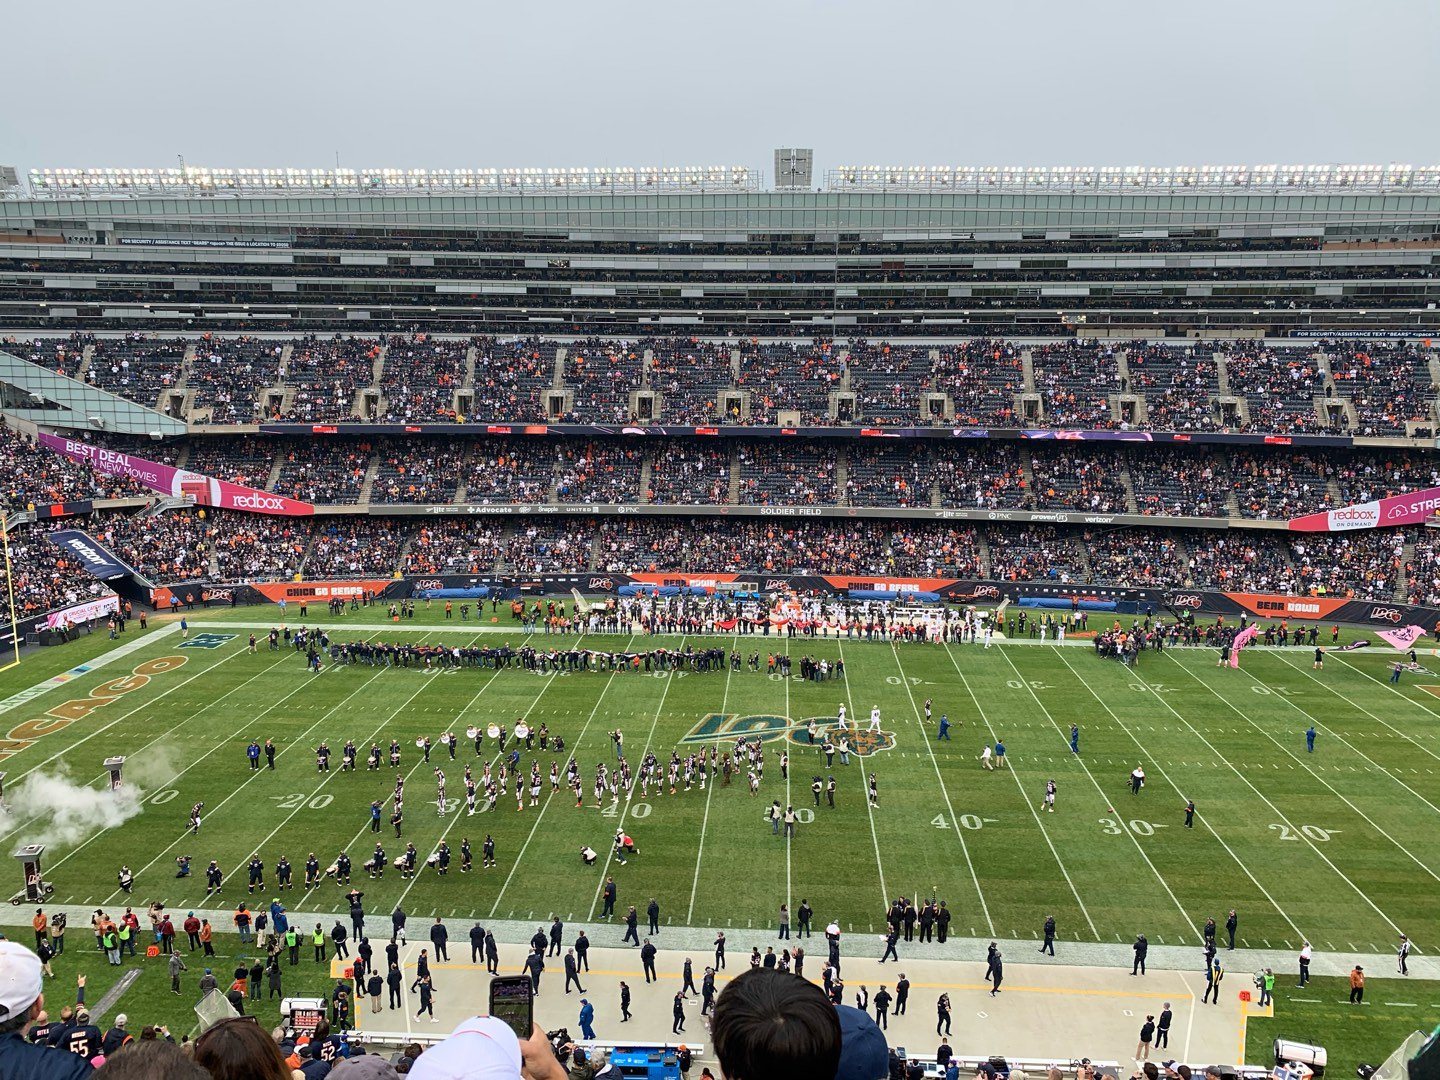 Soldier Field Section 437 Row 4 Seat 9